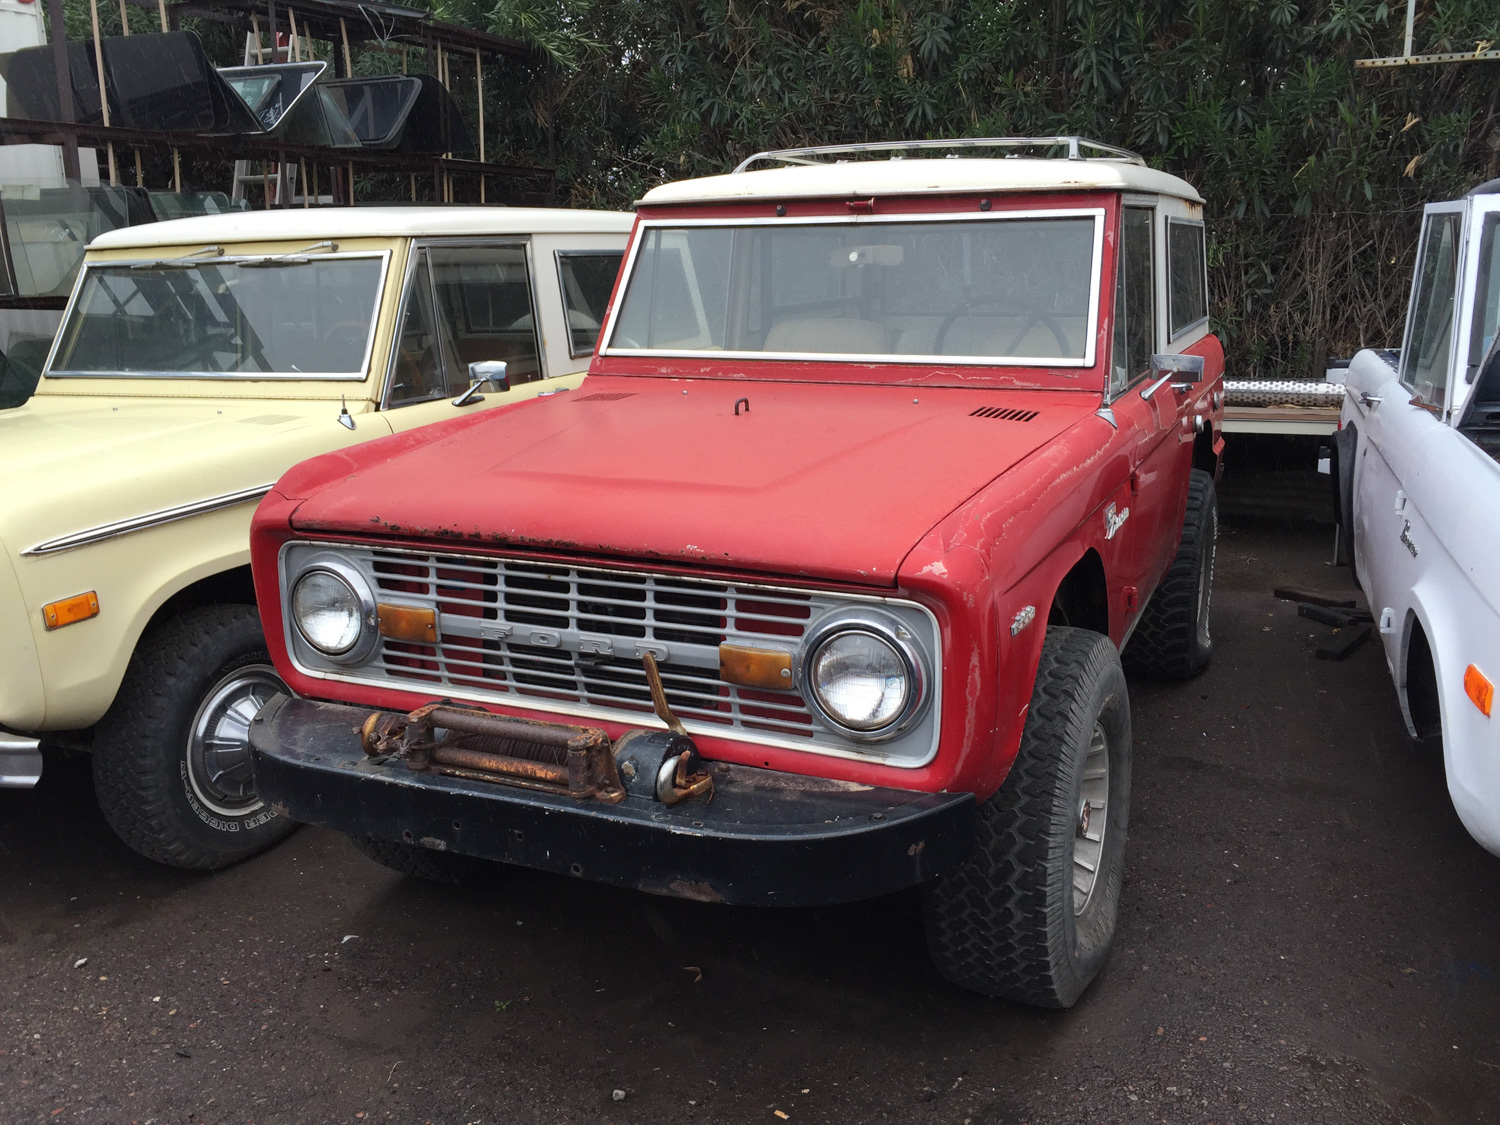 1969 Bronco Hunter Holman and Moody original body rusty parking lot